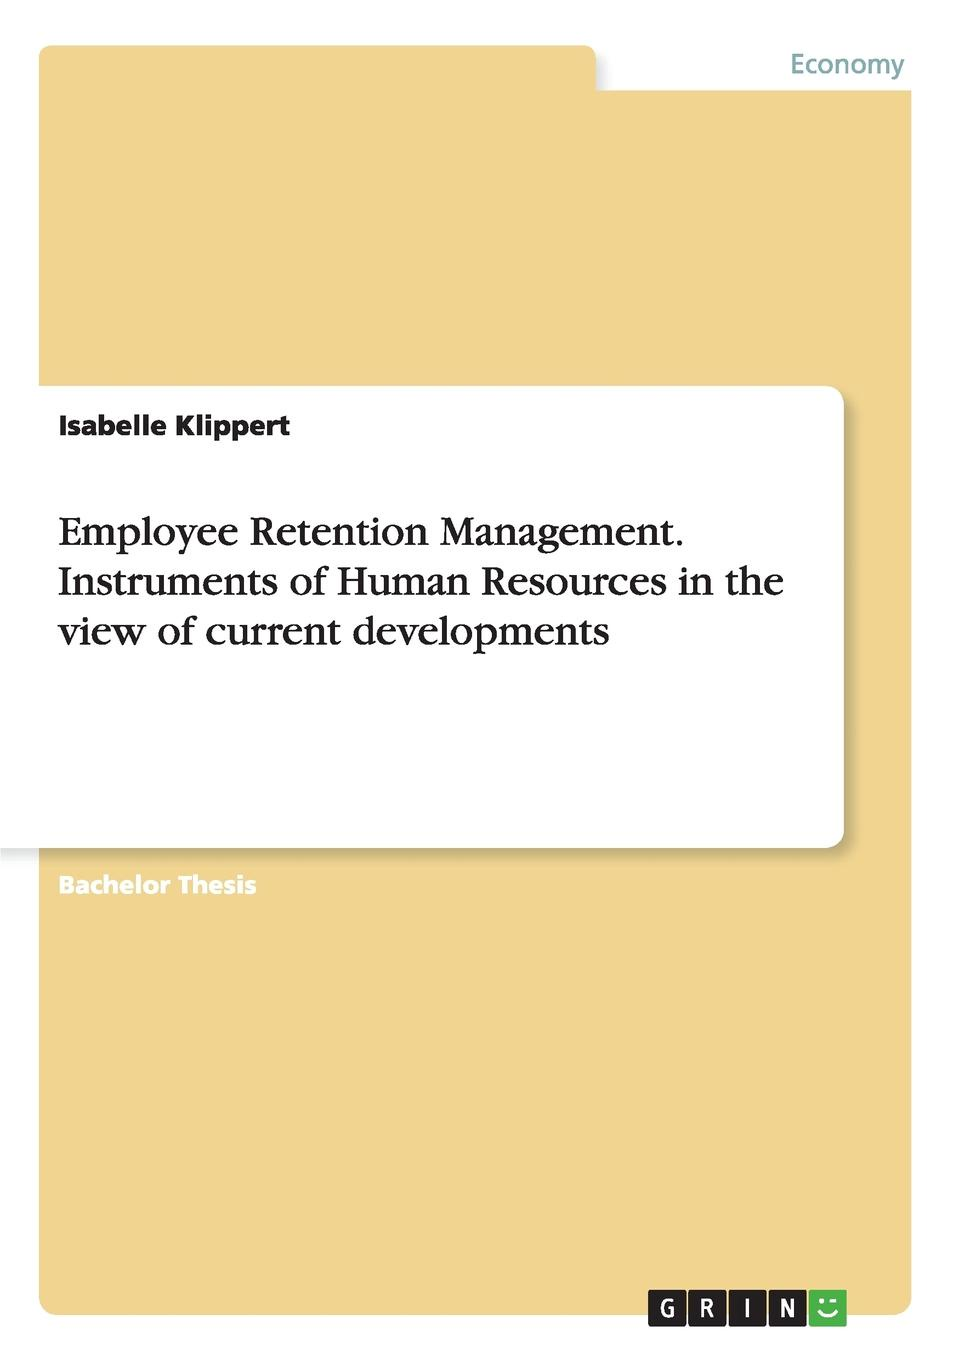 Isabelle Klippert Employee Retention Management. Instruments of Human Resources in the View of Current Developments blessing adegoke effect of training on employees productivity in public service organisation